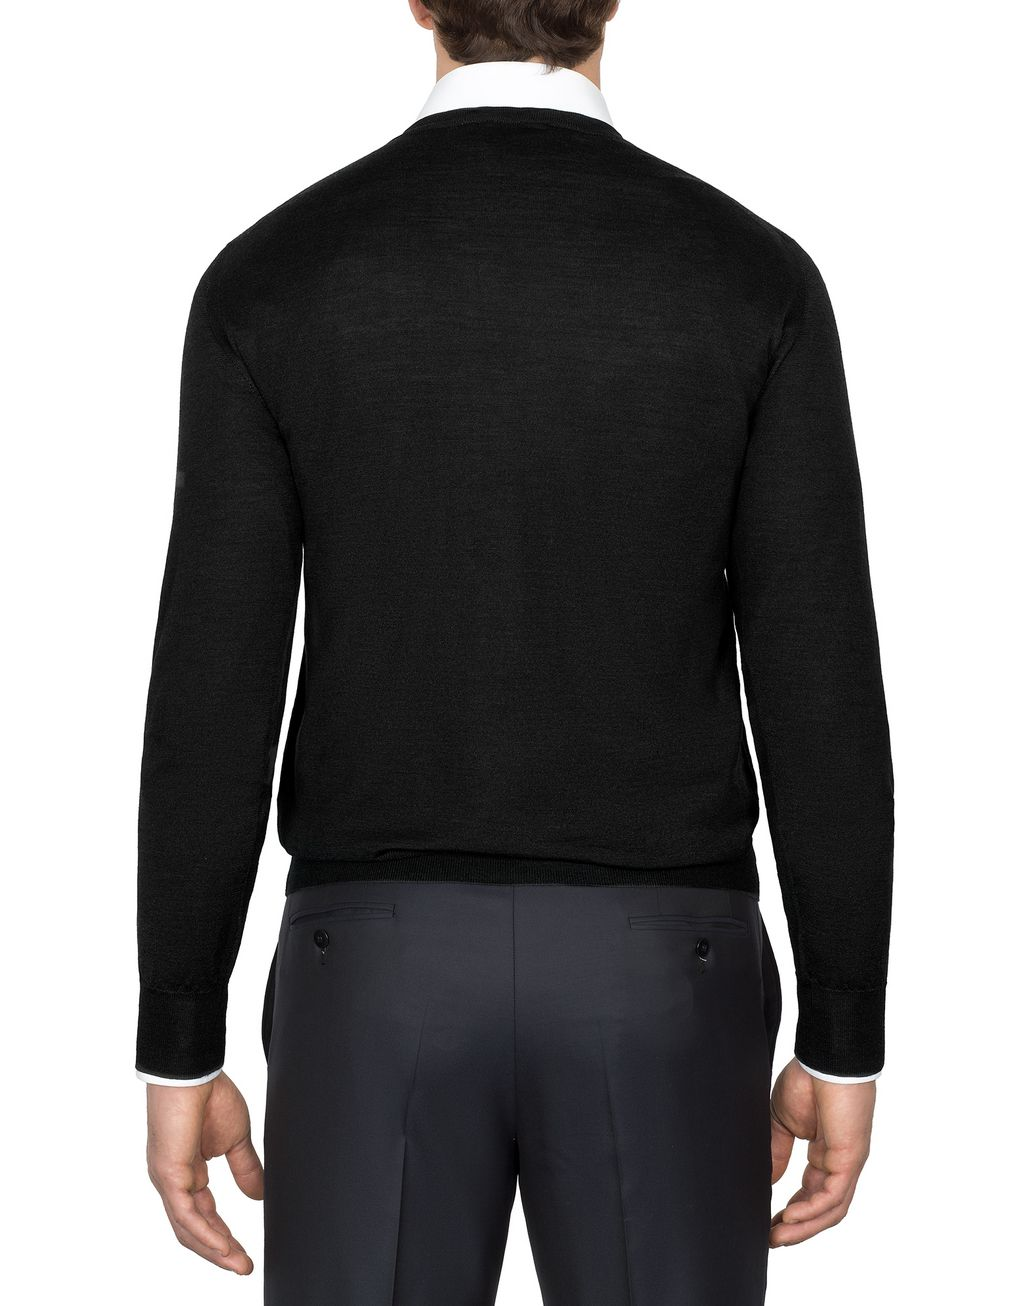 BRIONI 'Essential' Black V-Neck Sweater Knitwear Man d